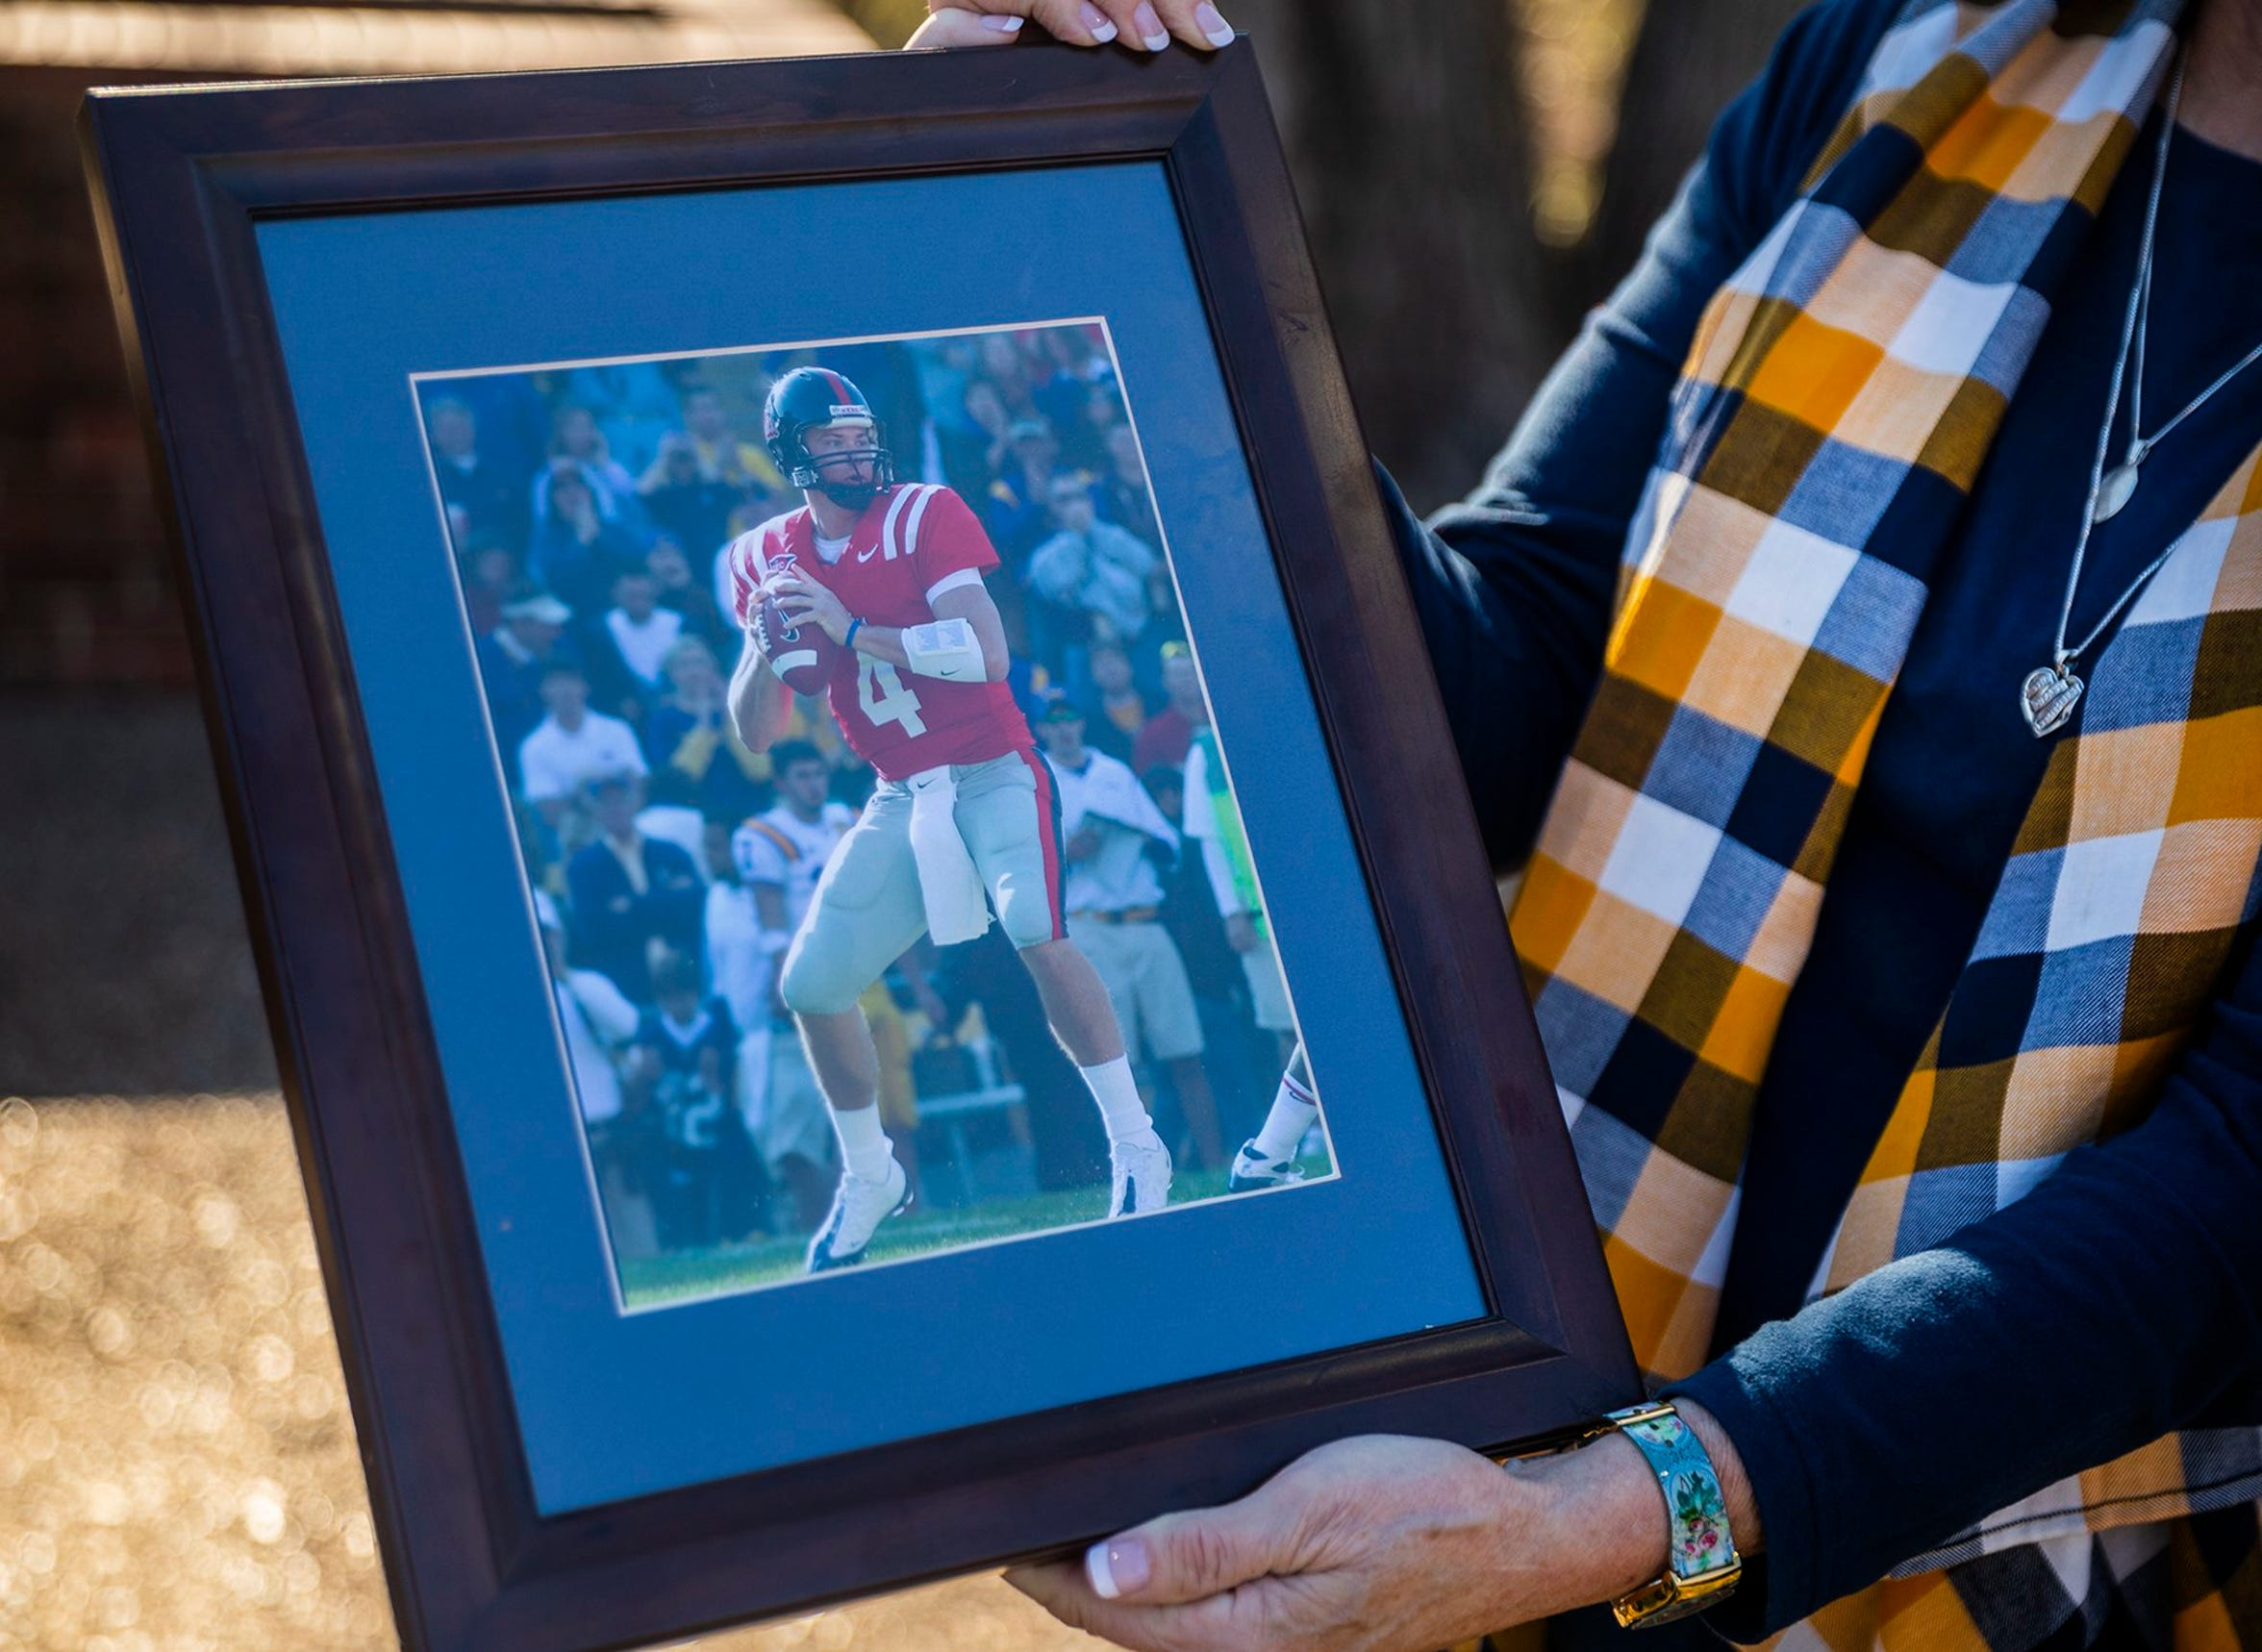 The family of Jevan Snead, a former UT and Ole Miss quarterback who died by suicide in September, share a photo of him during his college days.